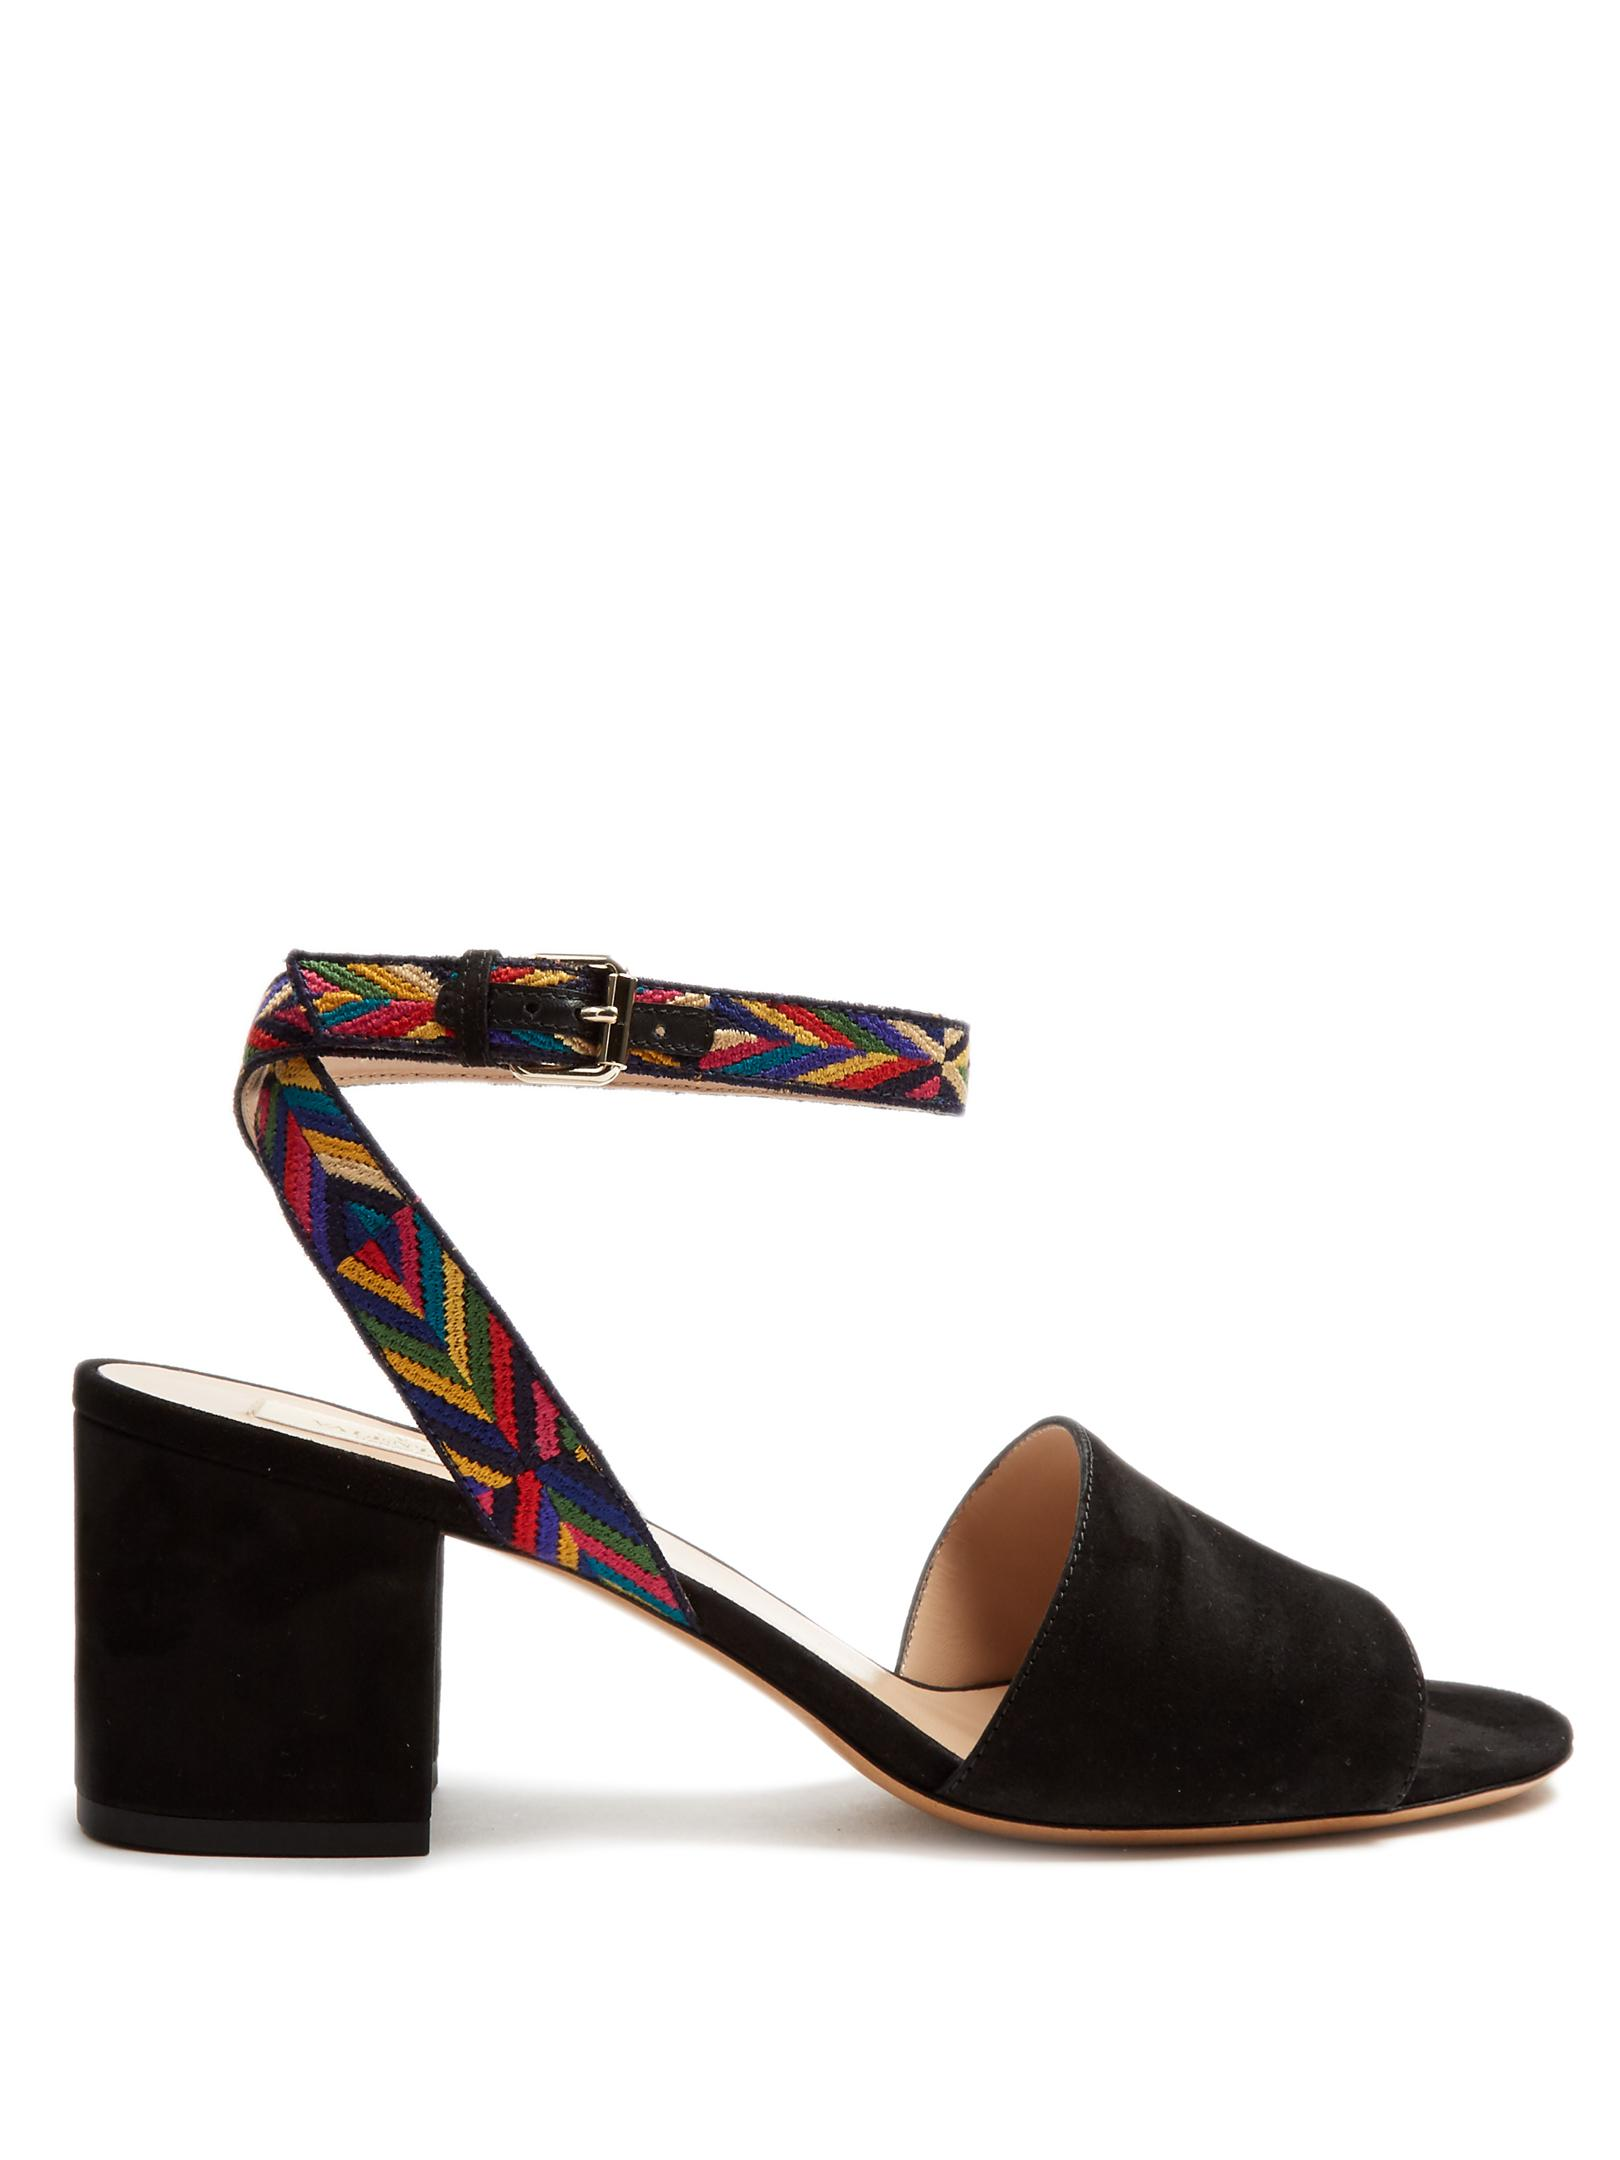 top quality outlet for nice Valentino Suede Embroidered Sandals sale outlet store Ug1QDZ